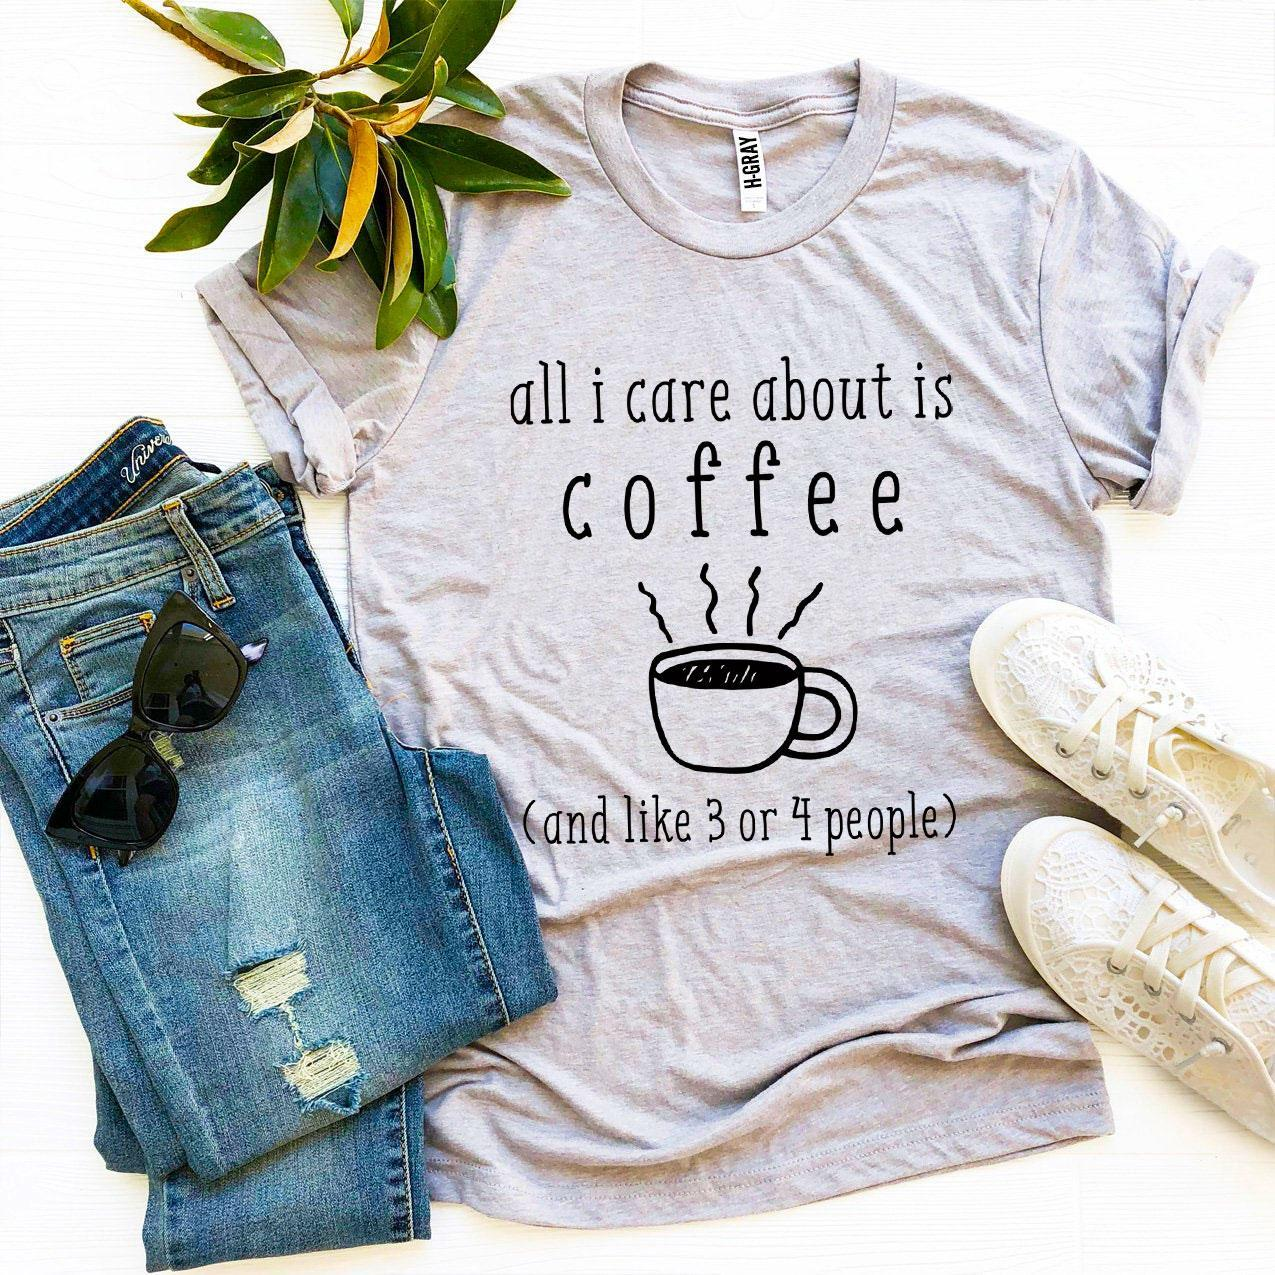 All I Care About Is Coffee T-shirt - Cream and Sugar Coffee House & Brewing Co.